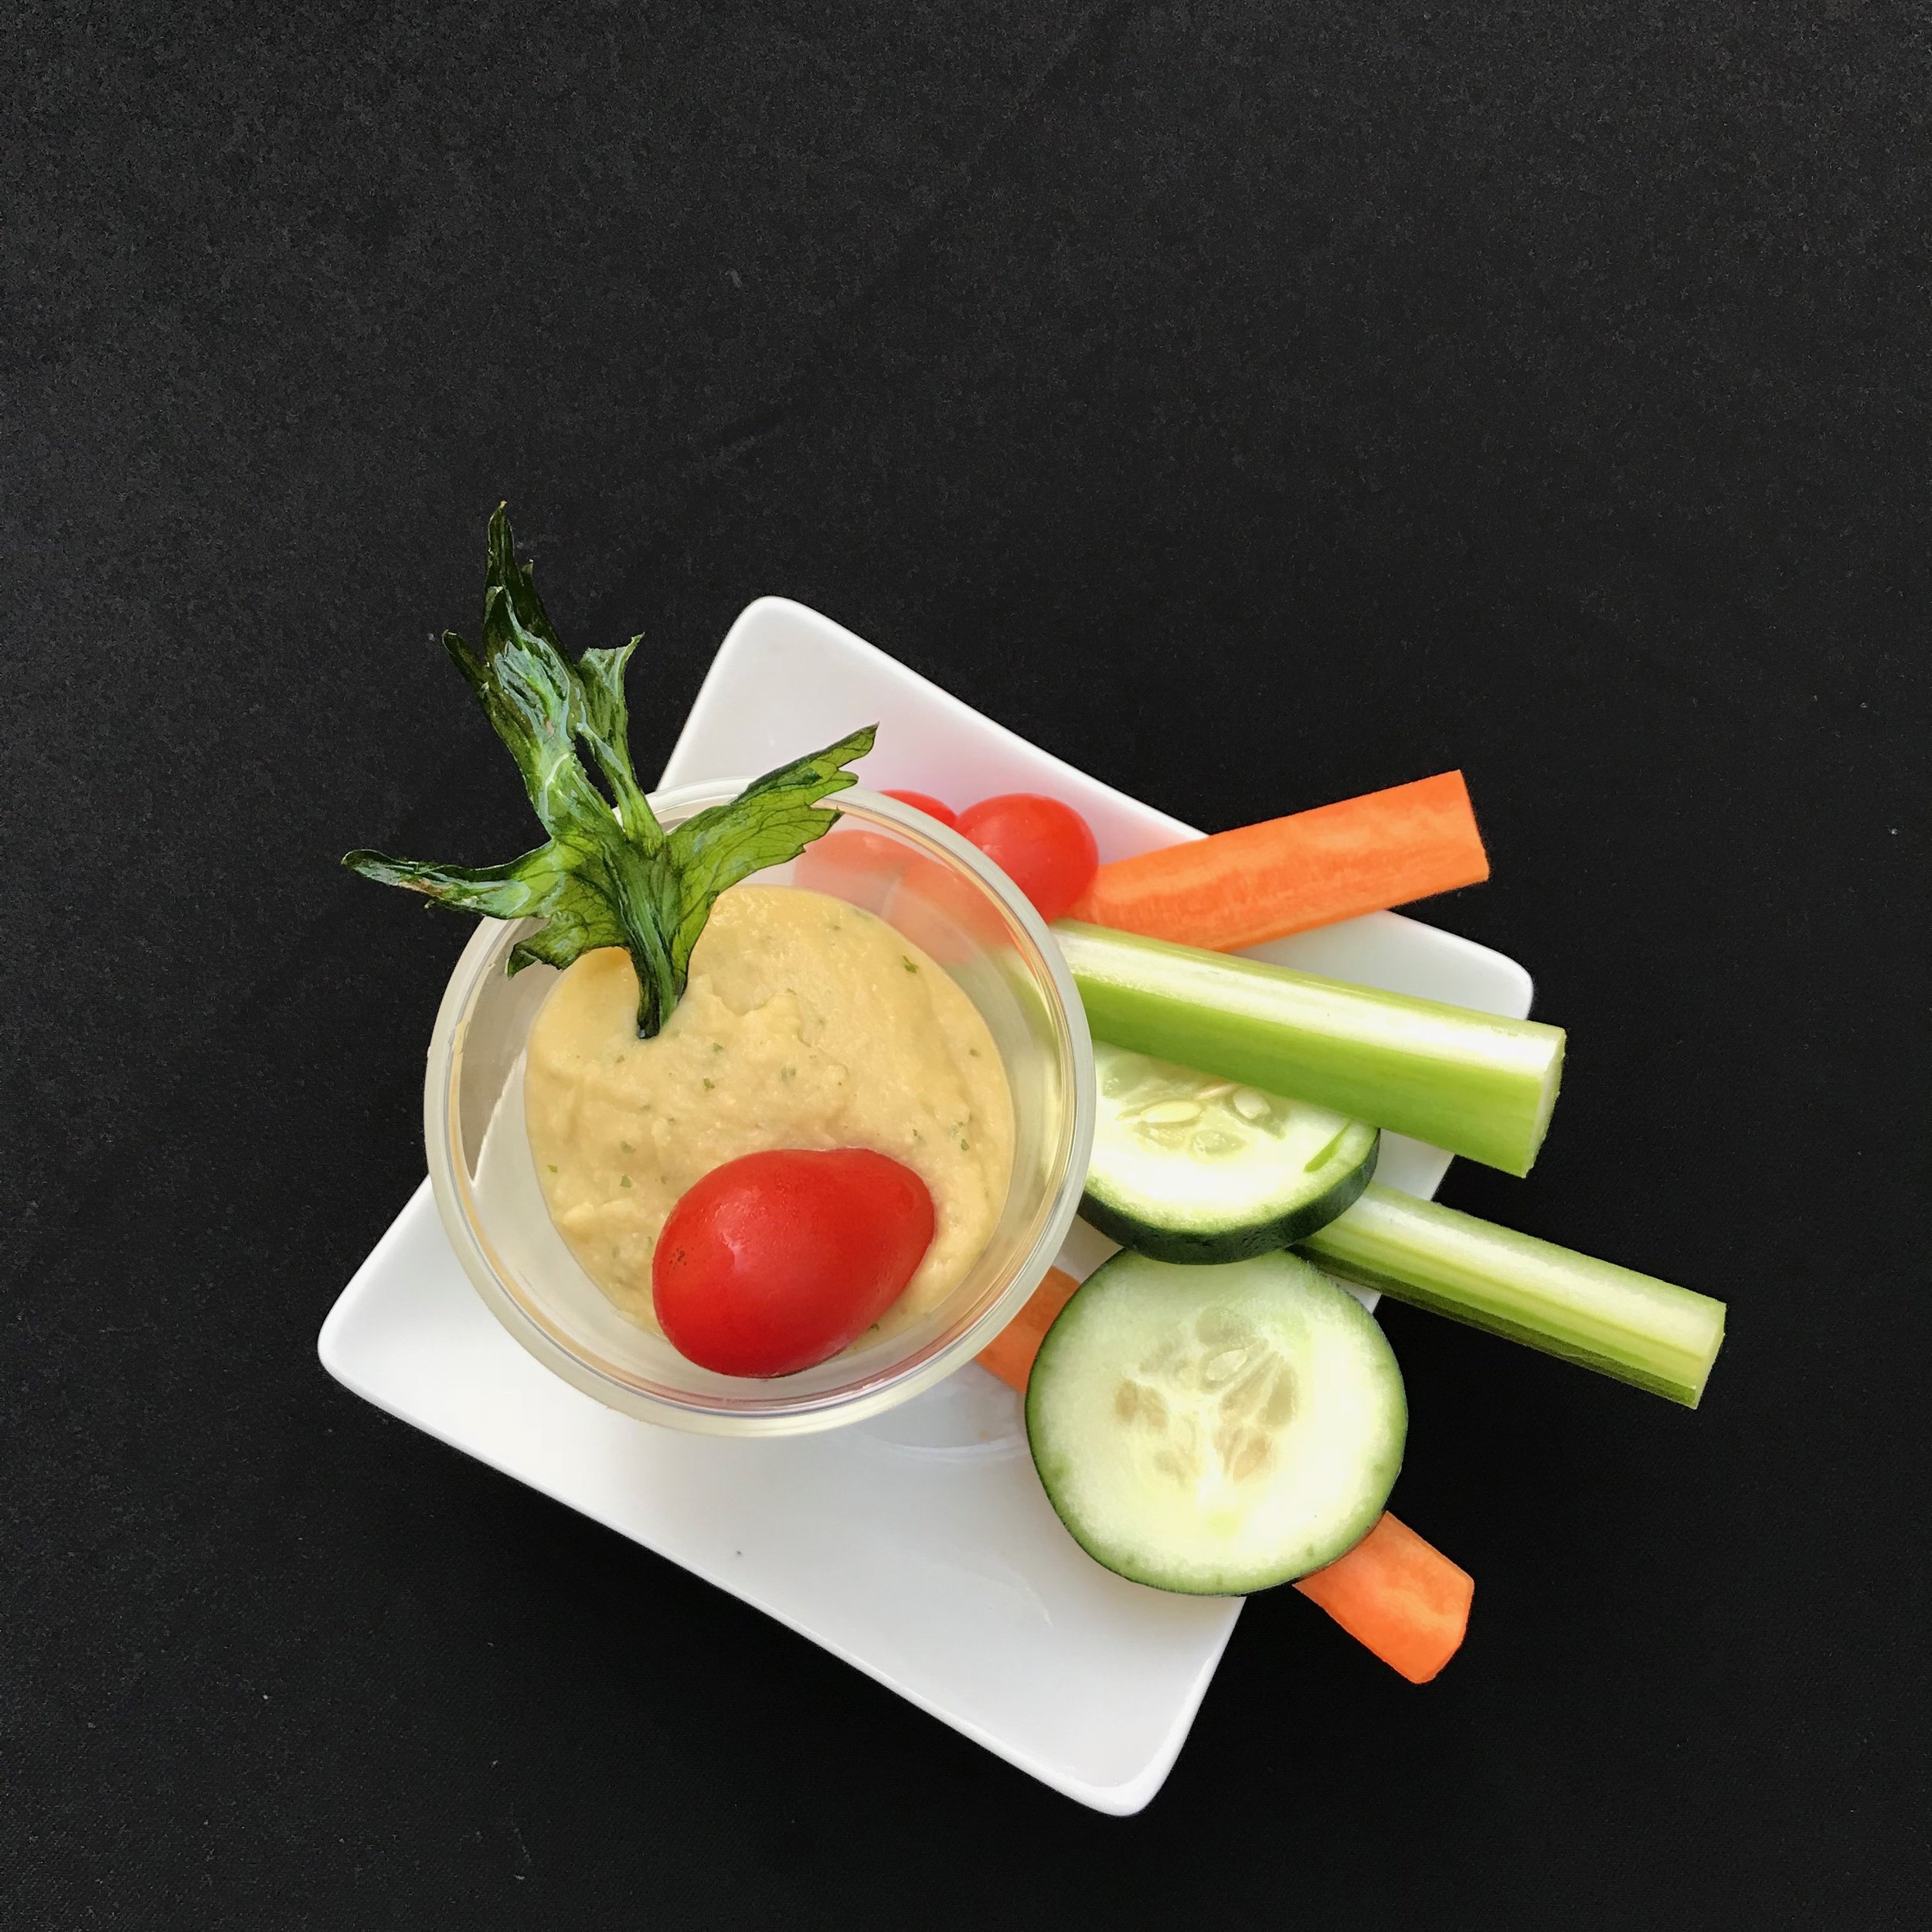 - Artichoke and Roasted Garlic & Lemon HummusCreamy pureed chickpeas and artichoke hearts, with roasted garlic, cumin, cayenne and tahini and served with celery, cucumber and carrots